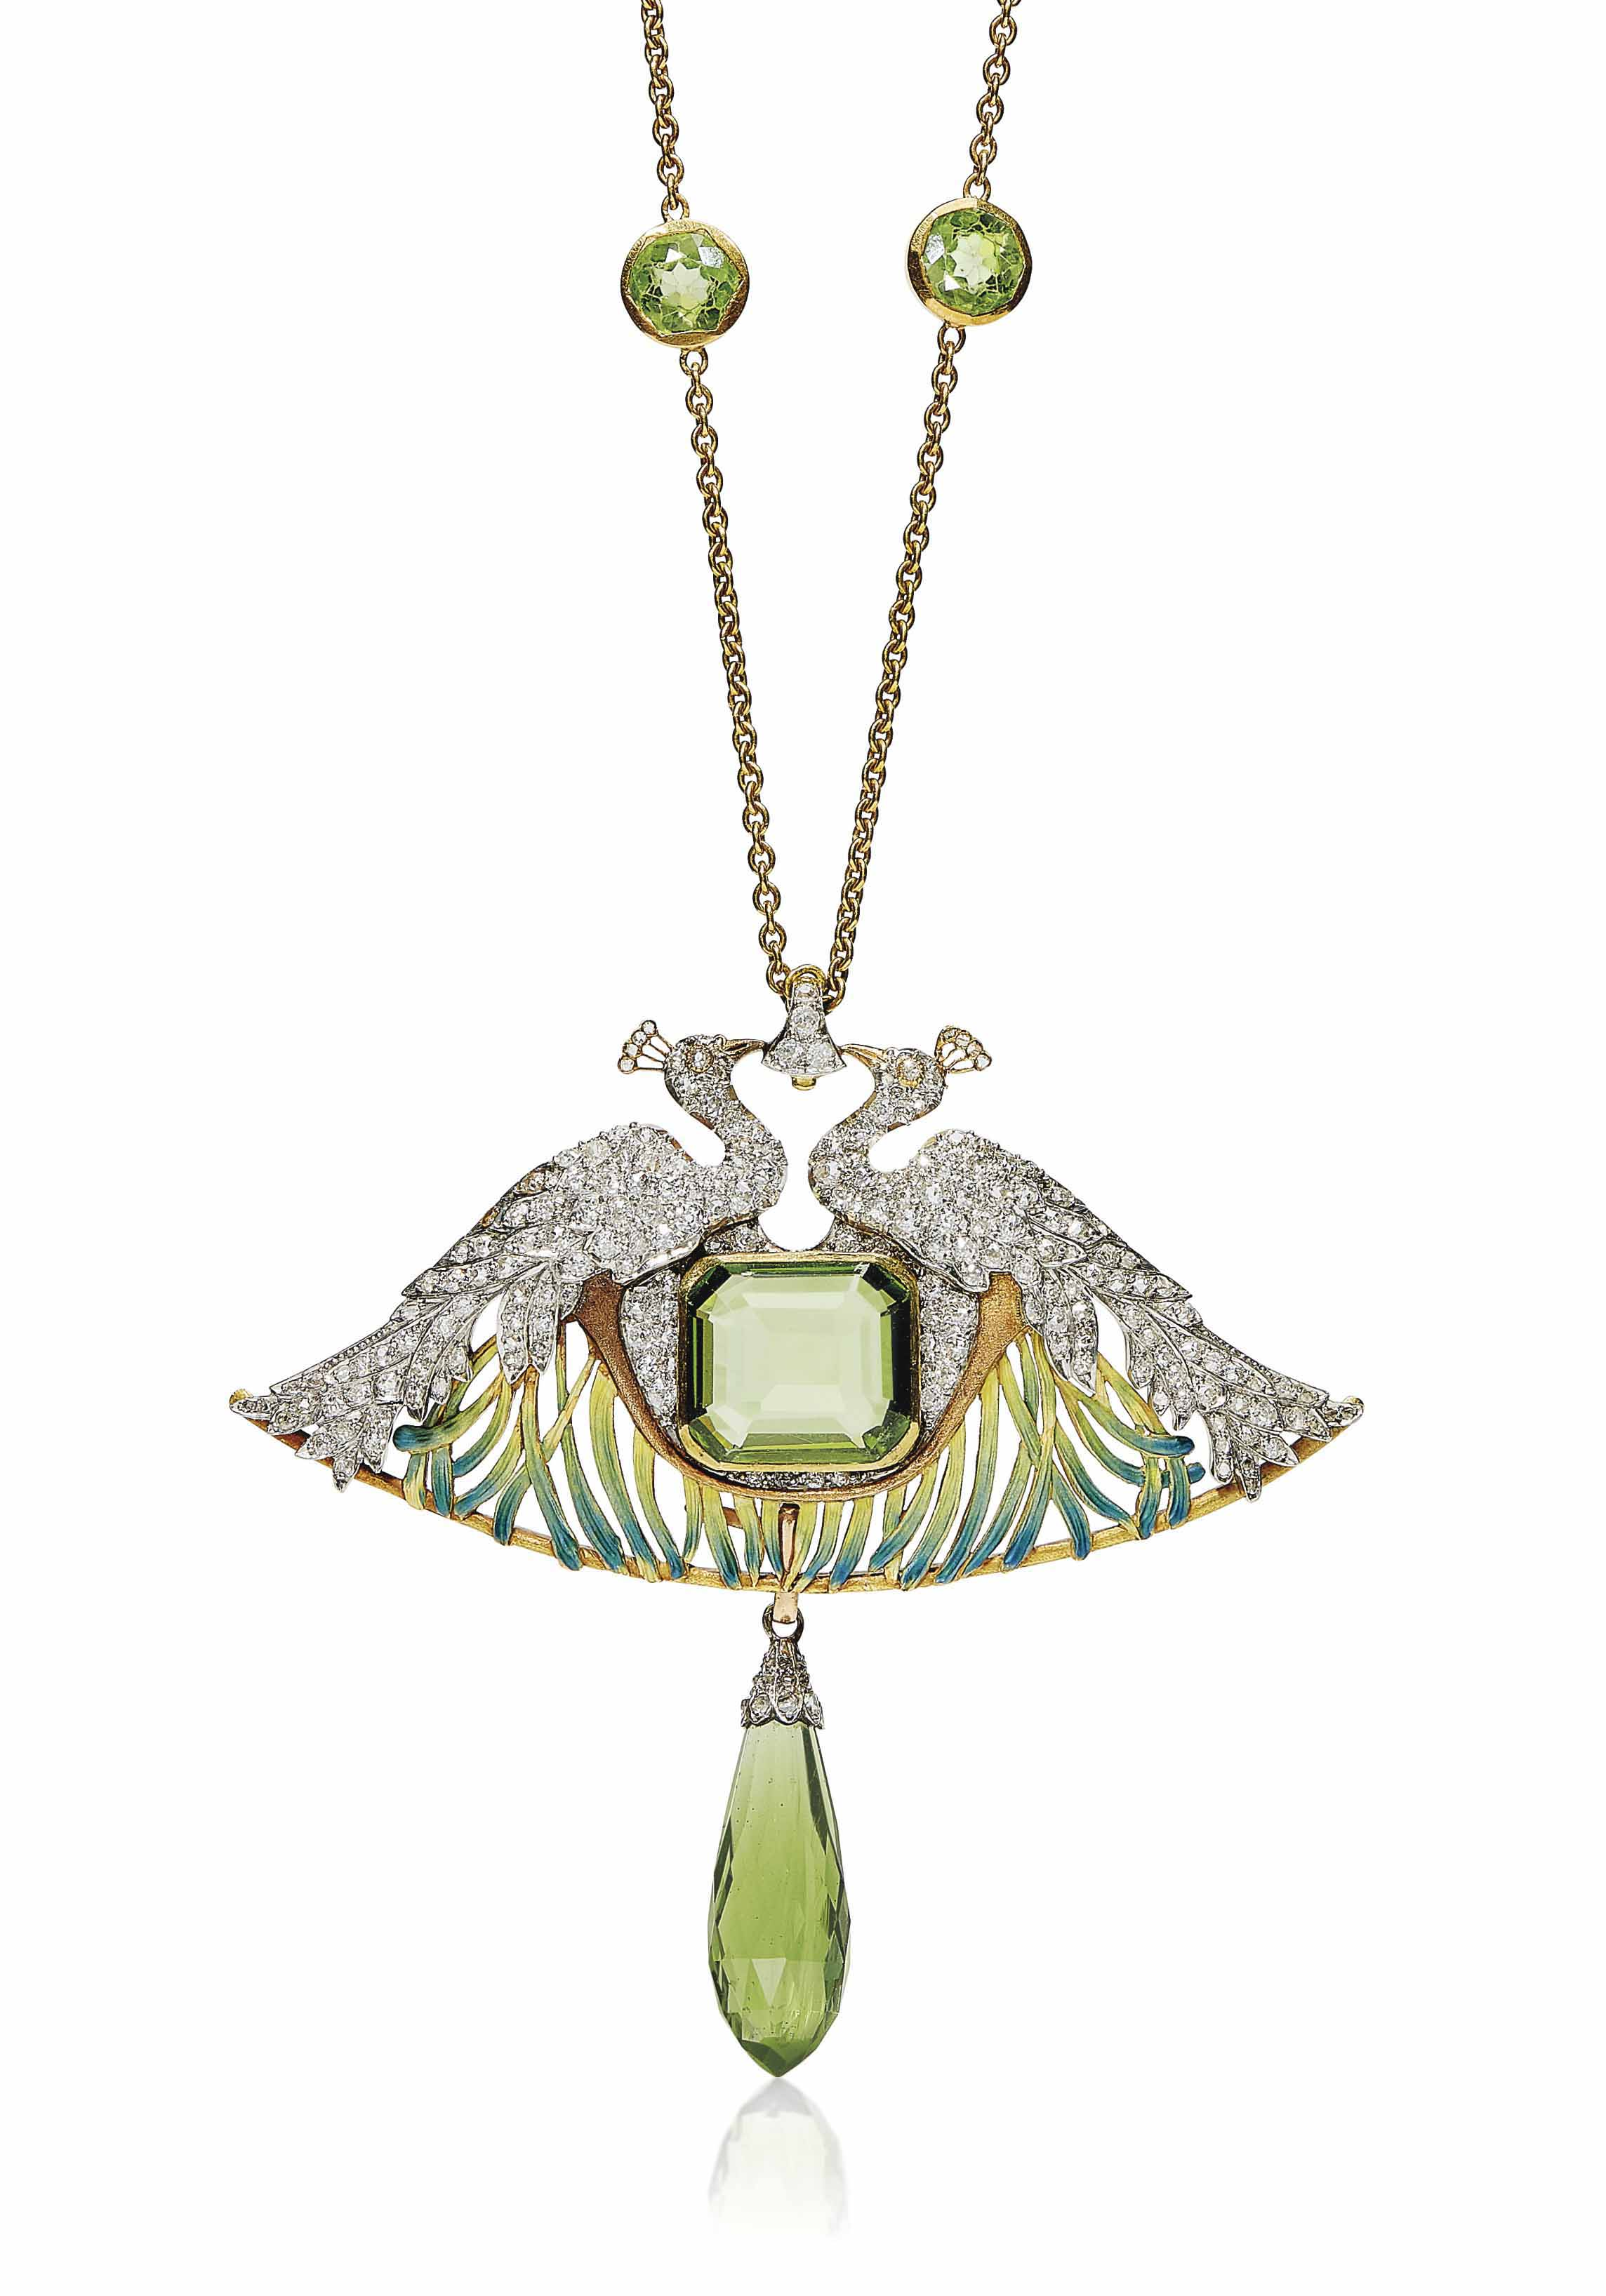 AN ART NOUVEAU PERIDOT, DIAMOND, ENAMEL AND GLASS PENDENT NECKLACE, BY RENÉ LALIQUE